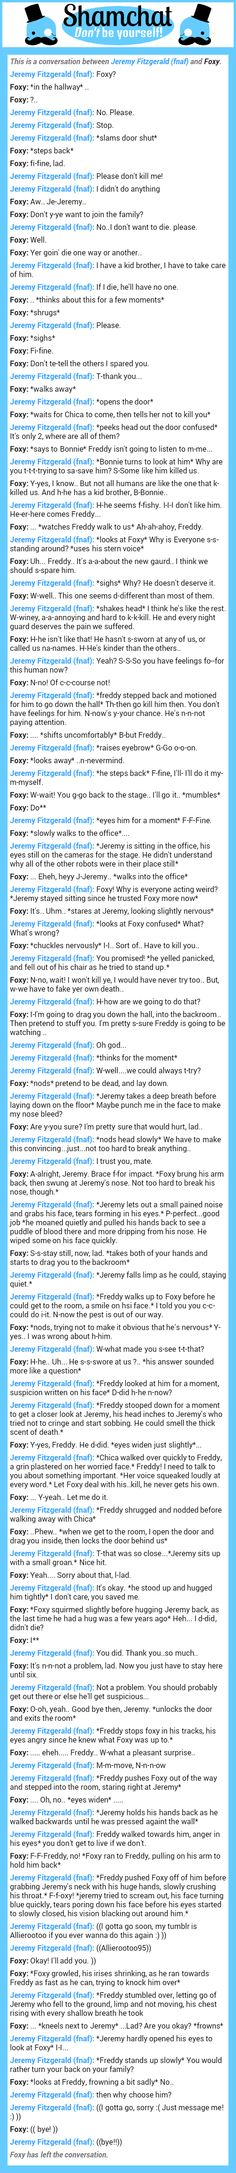 A conversation between Foxy and Jeremy Fitzgerald (fnaf)